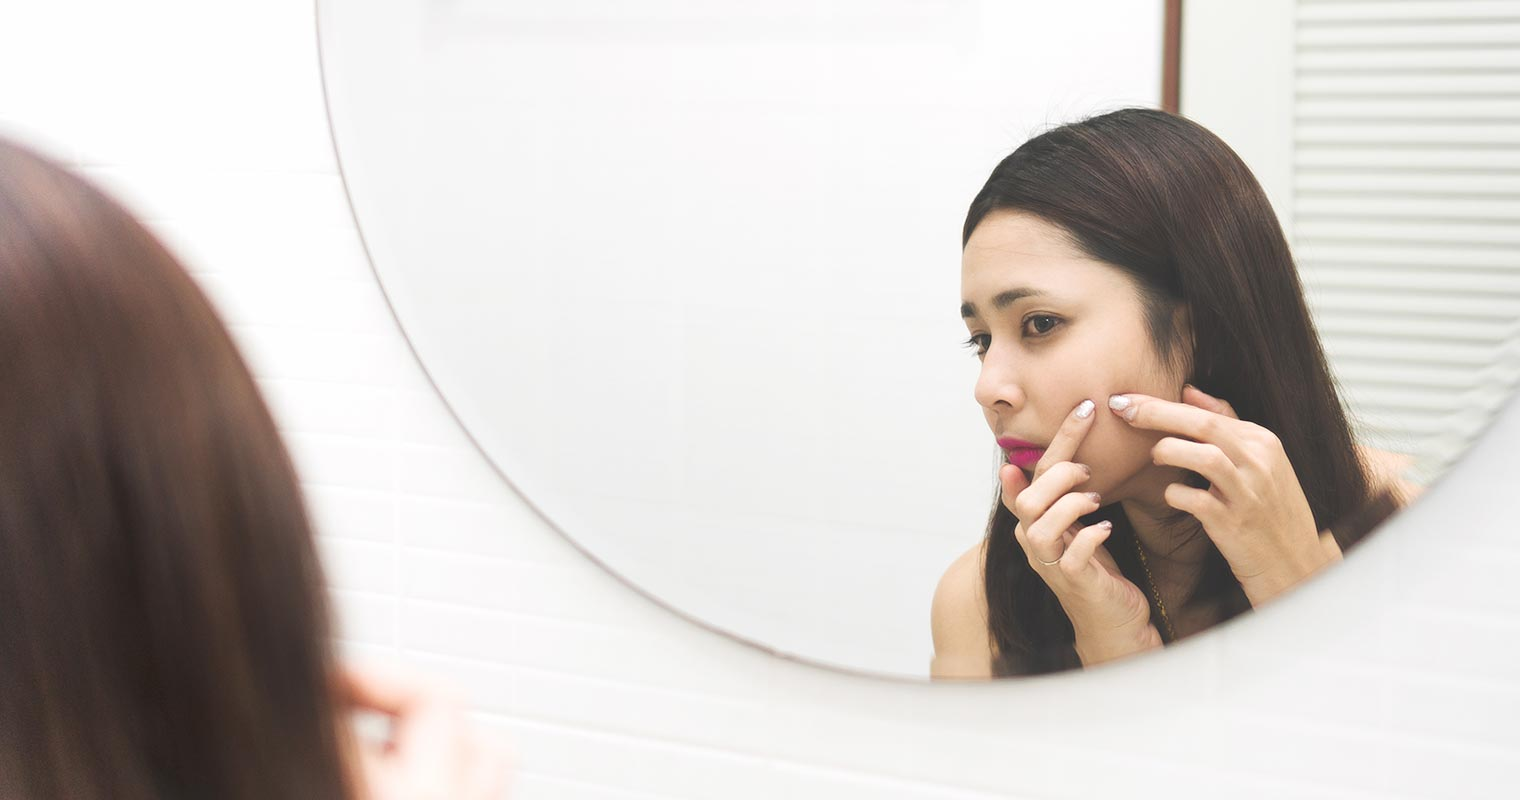 girl squeezing pimple in front of a mirror